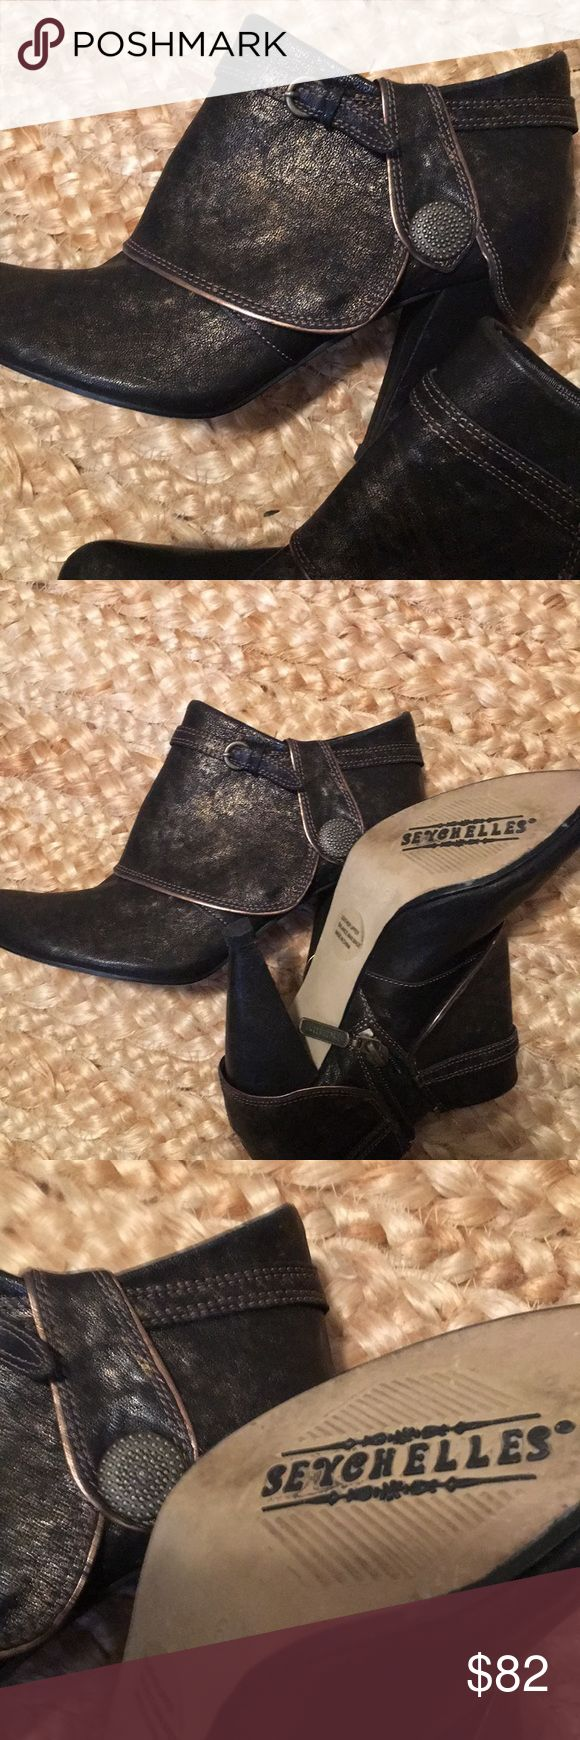 Seychelles boots Wonderful ankle boots that can dress up any outfit. Only worn a couple of times so have lots of life! Very nice shoe lune if not familiar be sure and look up! Seychelles Shoes Ankle Boots & Booties